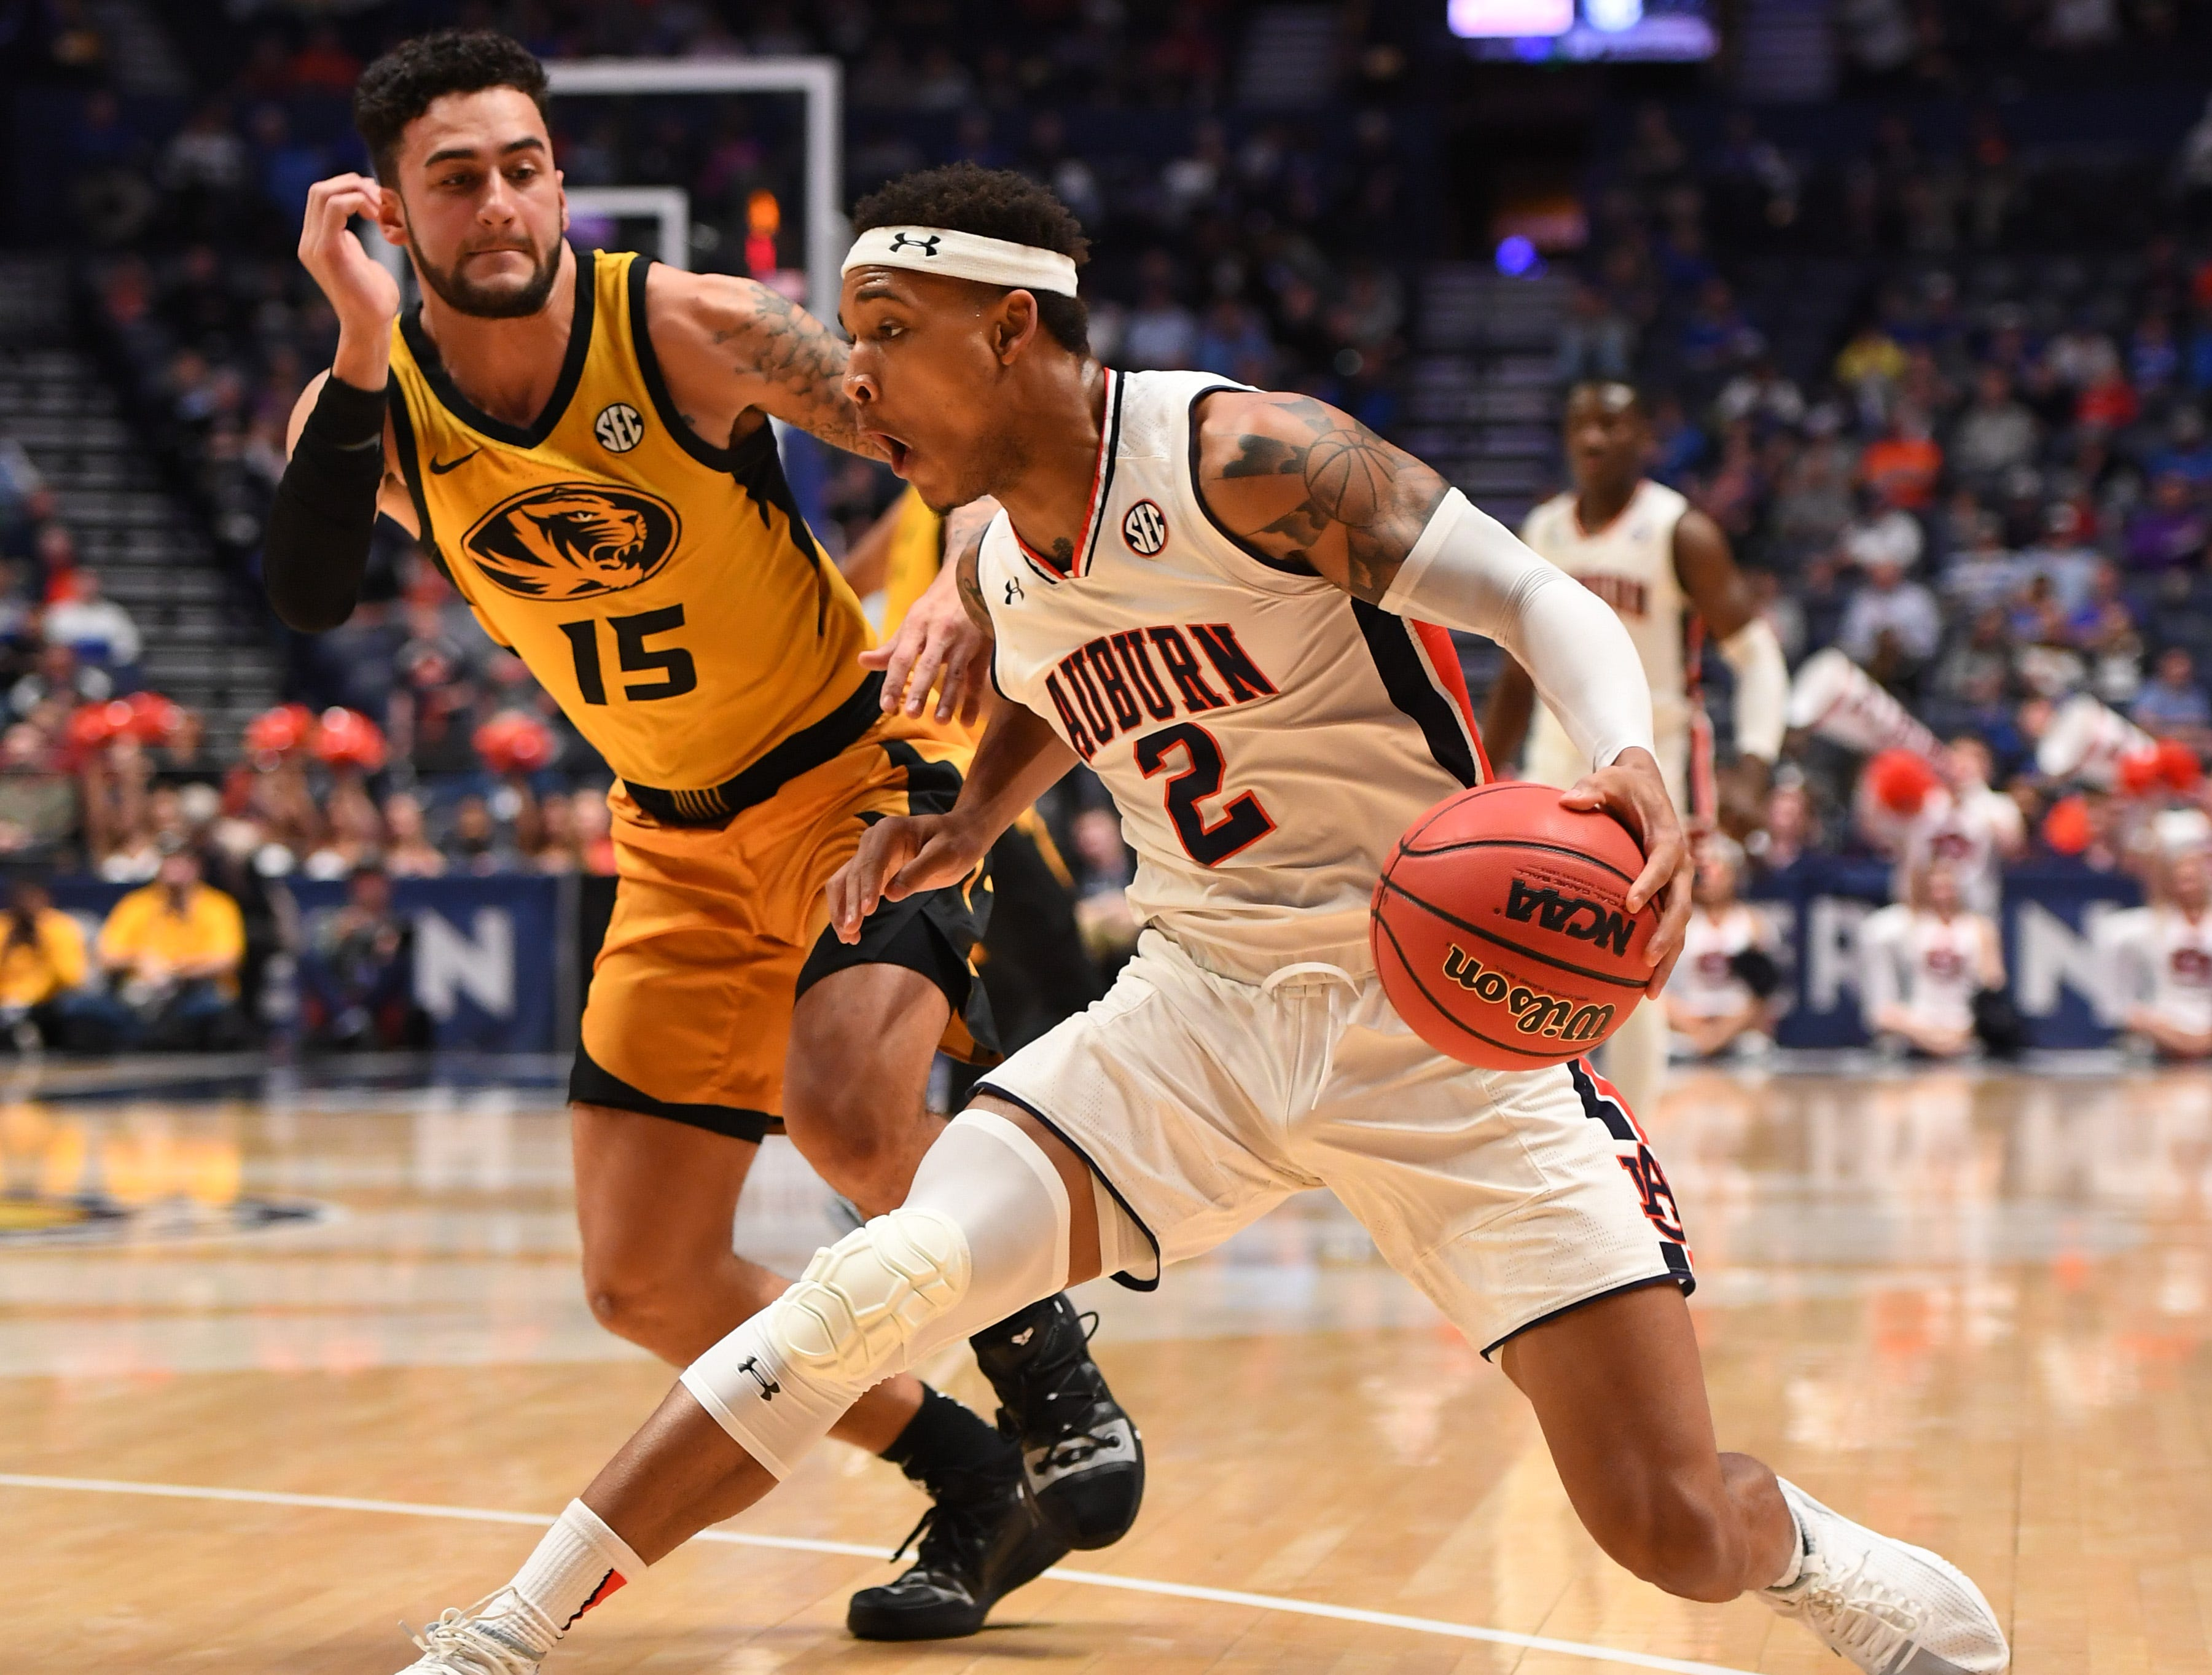 Mar 14, 2019; Nashville, TN, USA; Auburn Tigers guard Bryce Brown (2) works against Missouri Tigers guard Jordan Geist (15) during the first half of the SEC conference tournament at Bridgestone Arena. Mandatory Credit: Christopher Hanewinckel-USA TODAY Sports